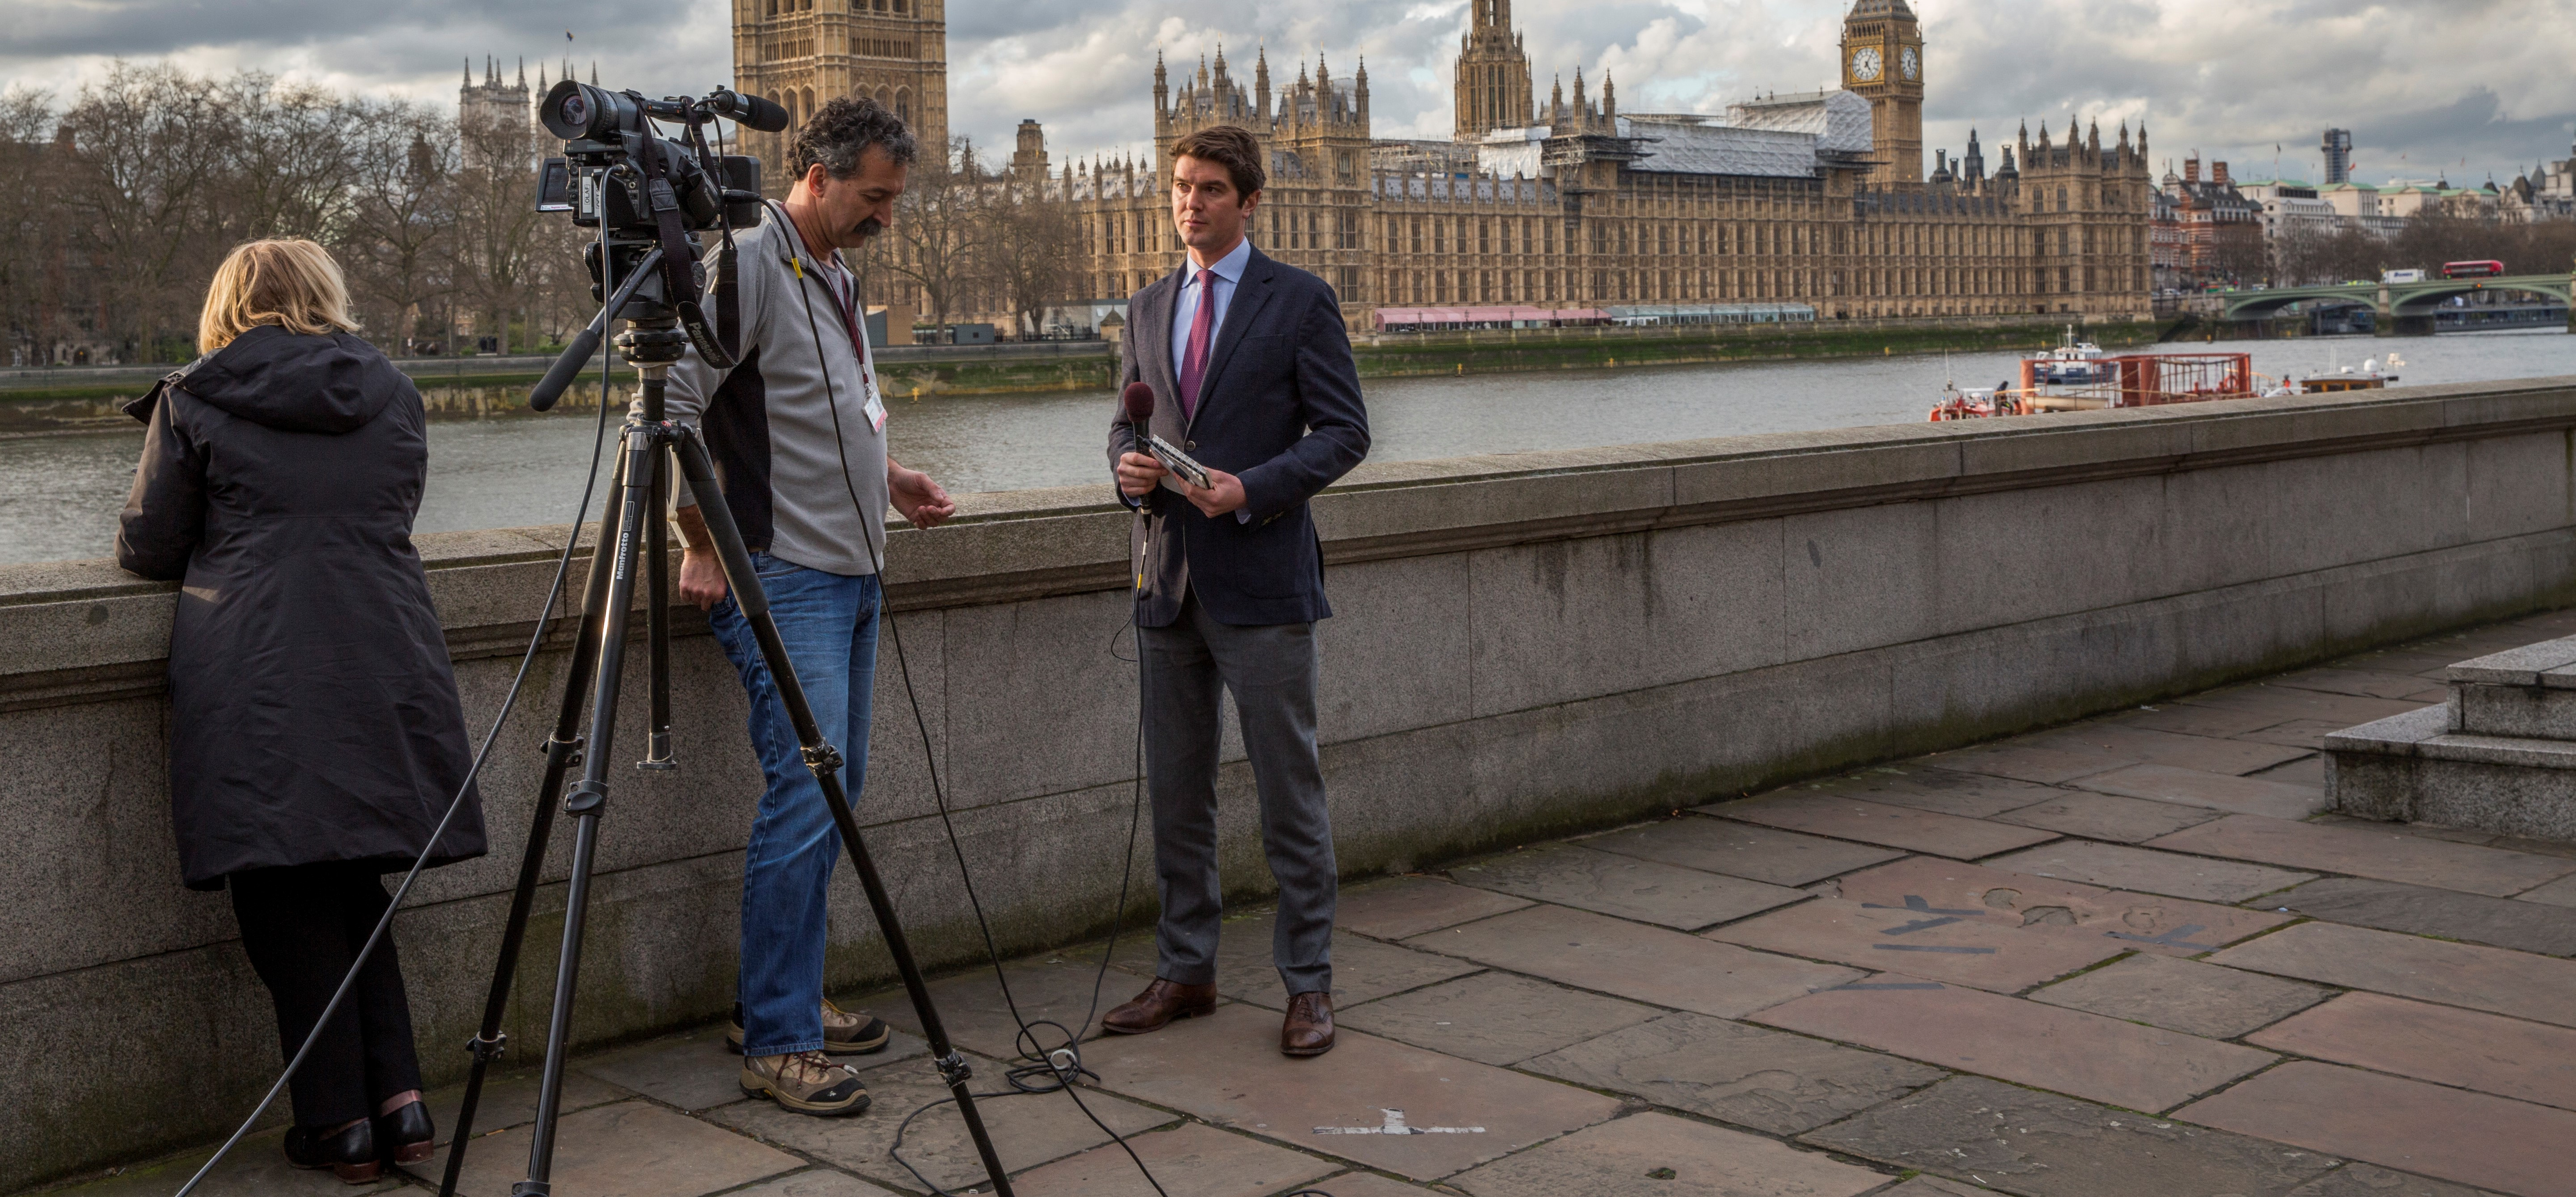 A news crew across the Thames from the Houses of Parliament. Misinformation in the media was rife in the immediate aftermath of the Westminster attack (Getty images/Kashfi Halford/Barcroft Images)